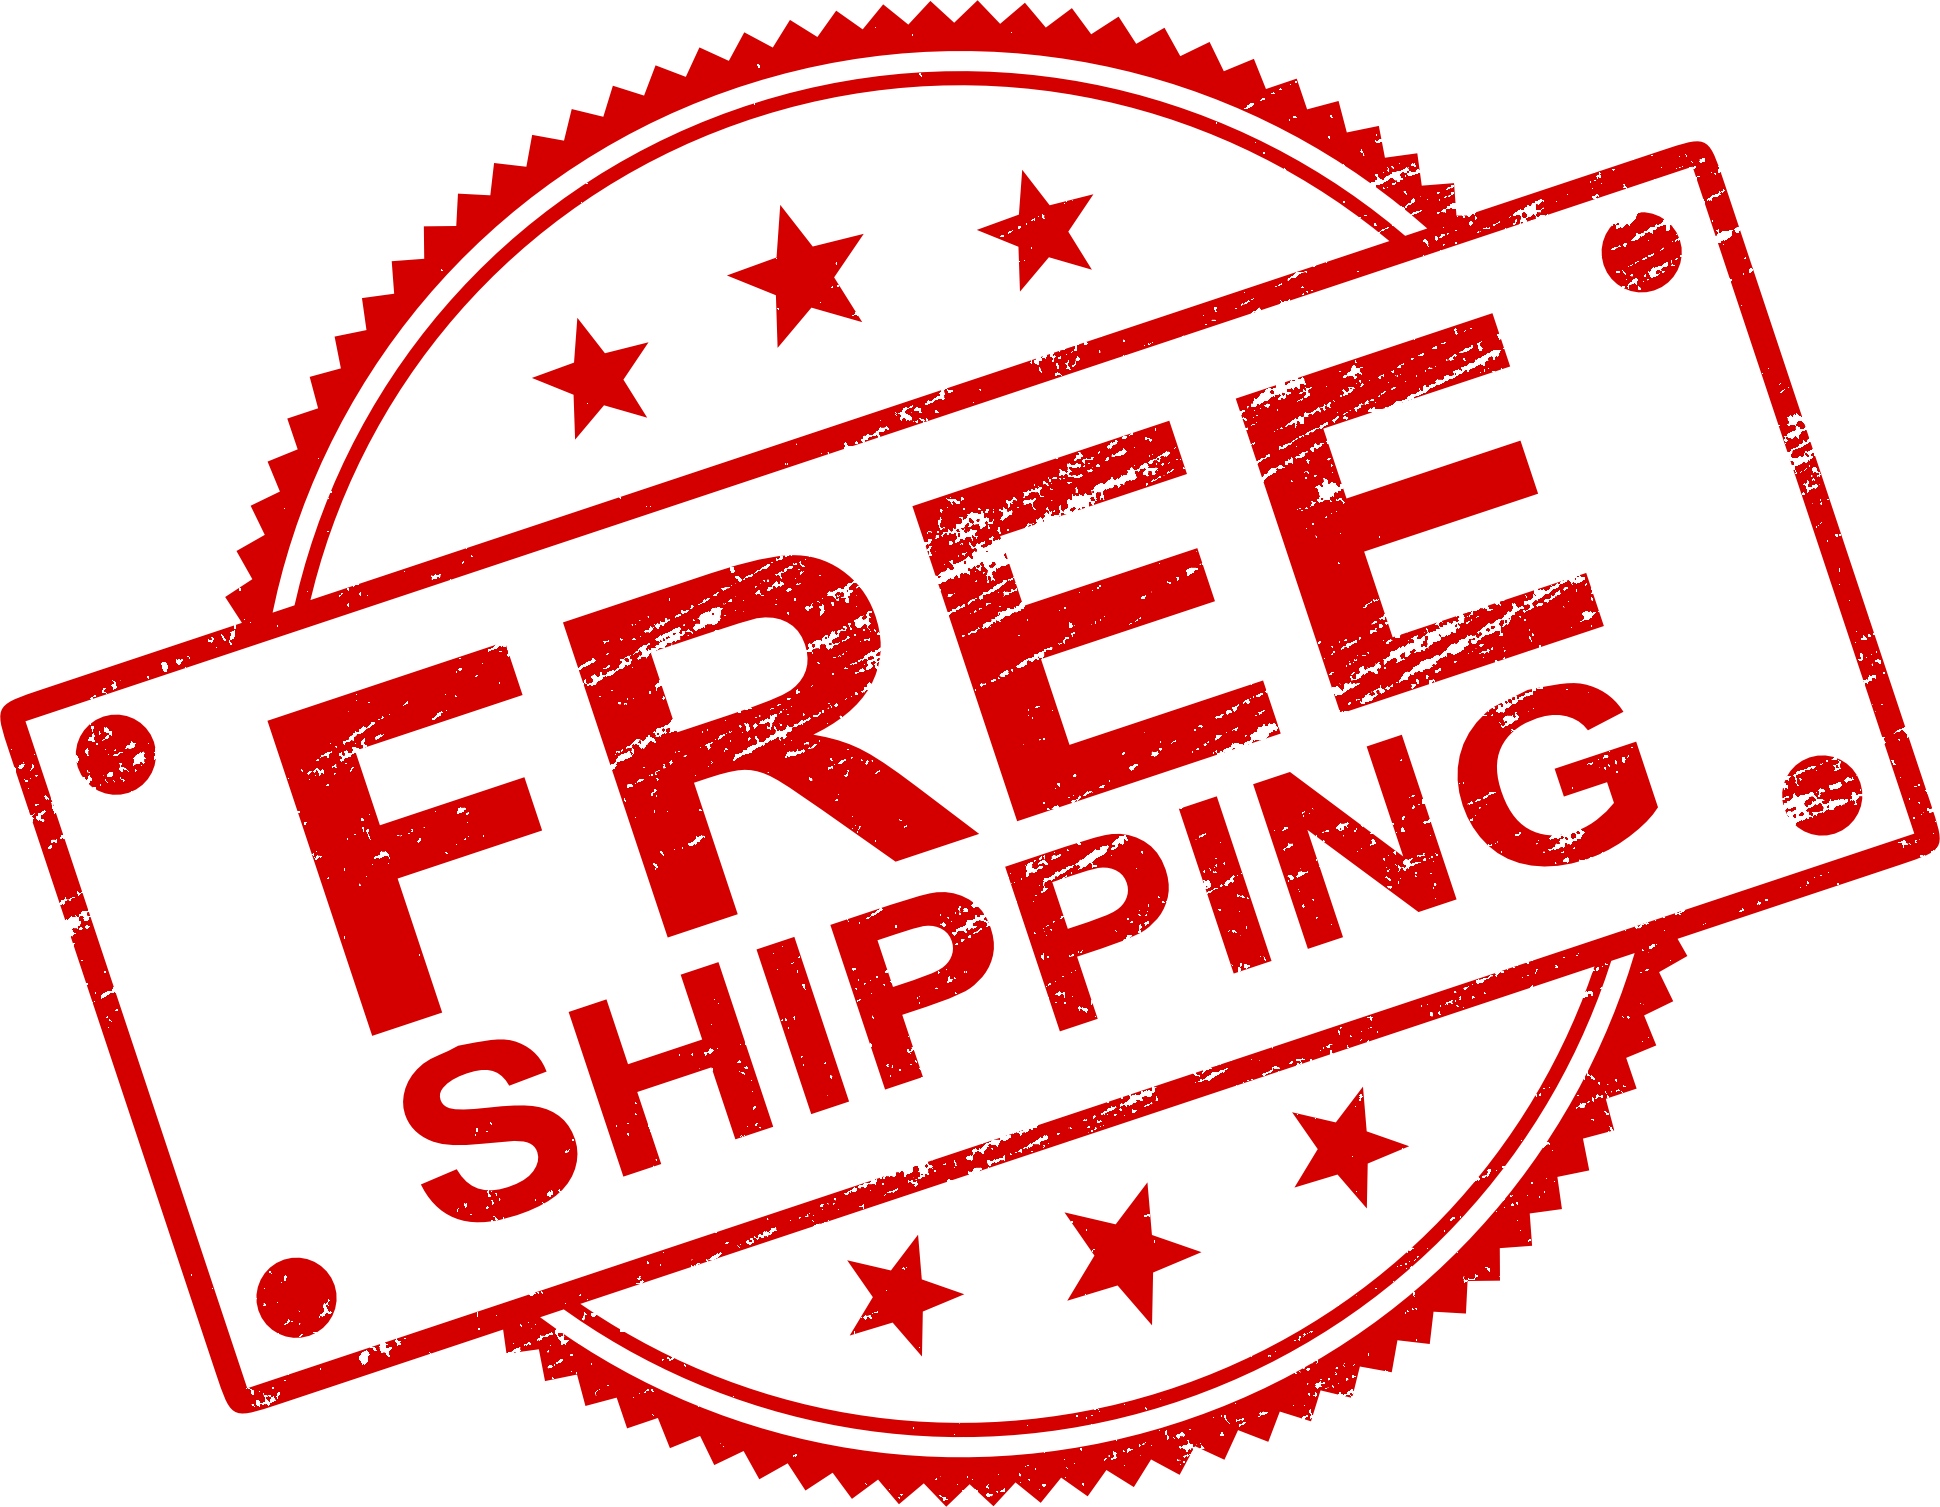 4 Free Shipping Stamp Vector (PNG Transparent, SVG.